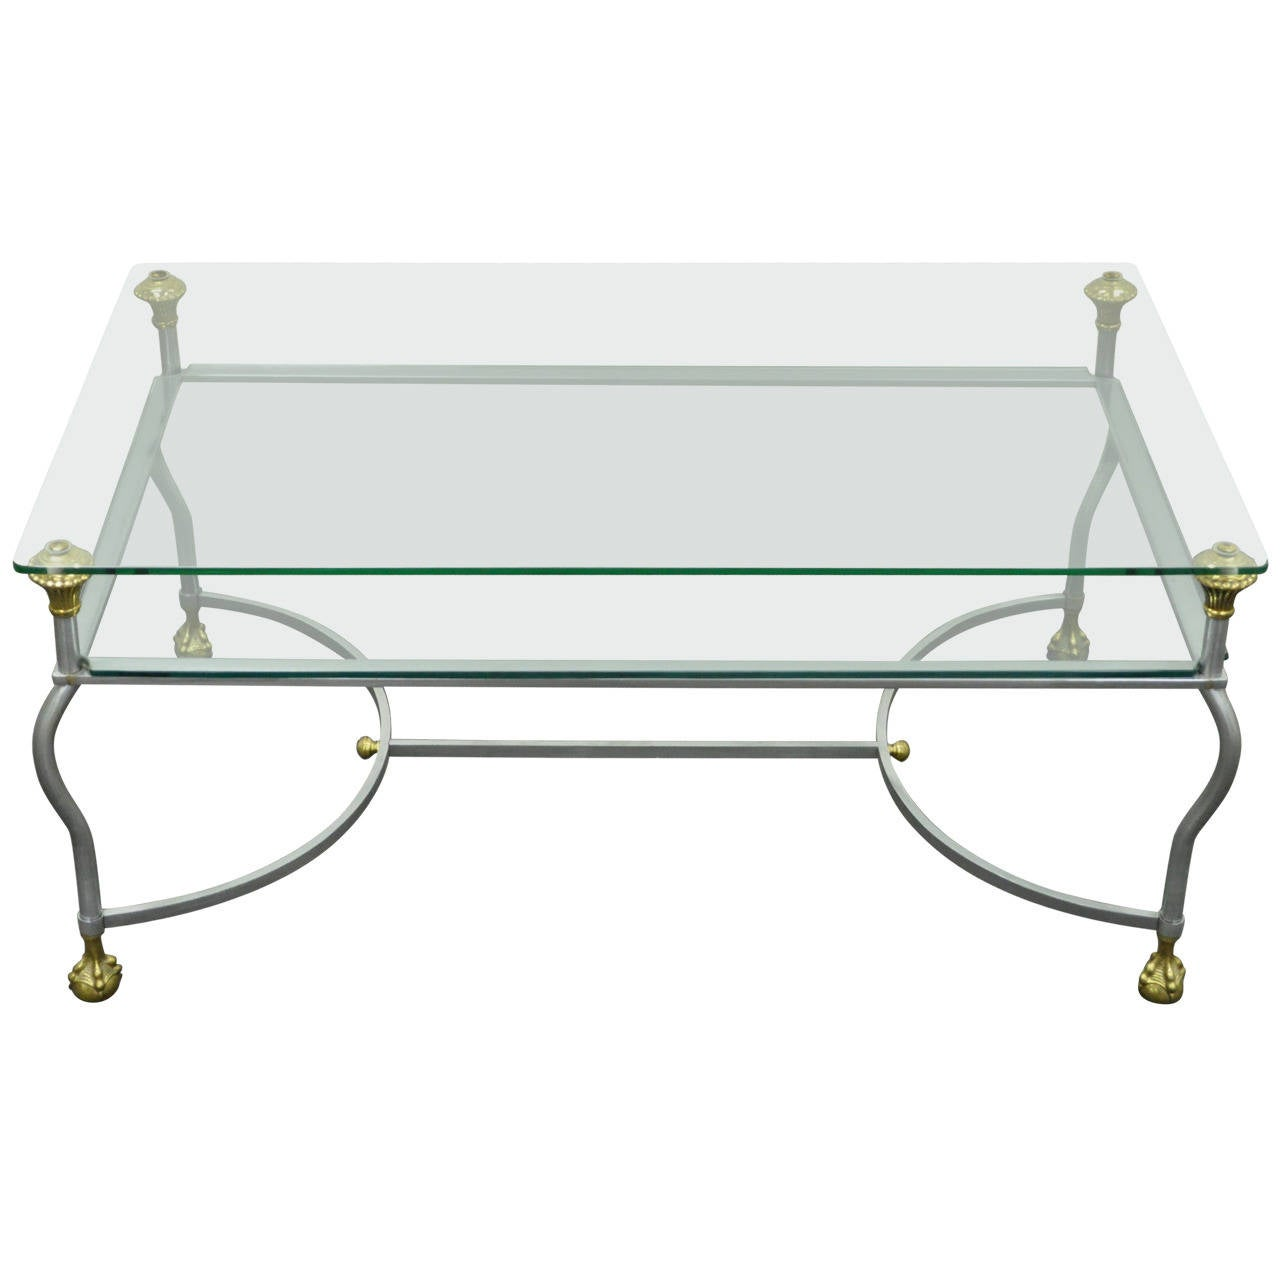 Rare Brass Brushed Steel And Glass Claw Foot Coffee Table After